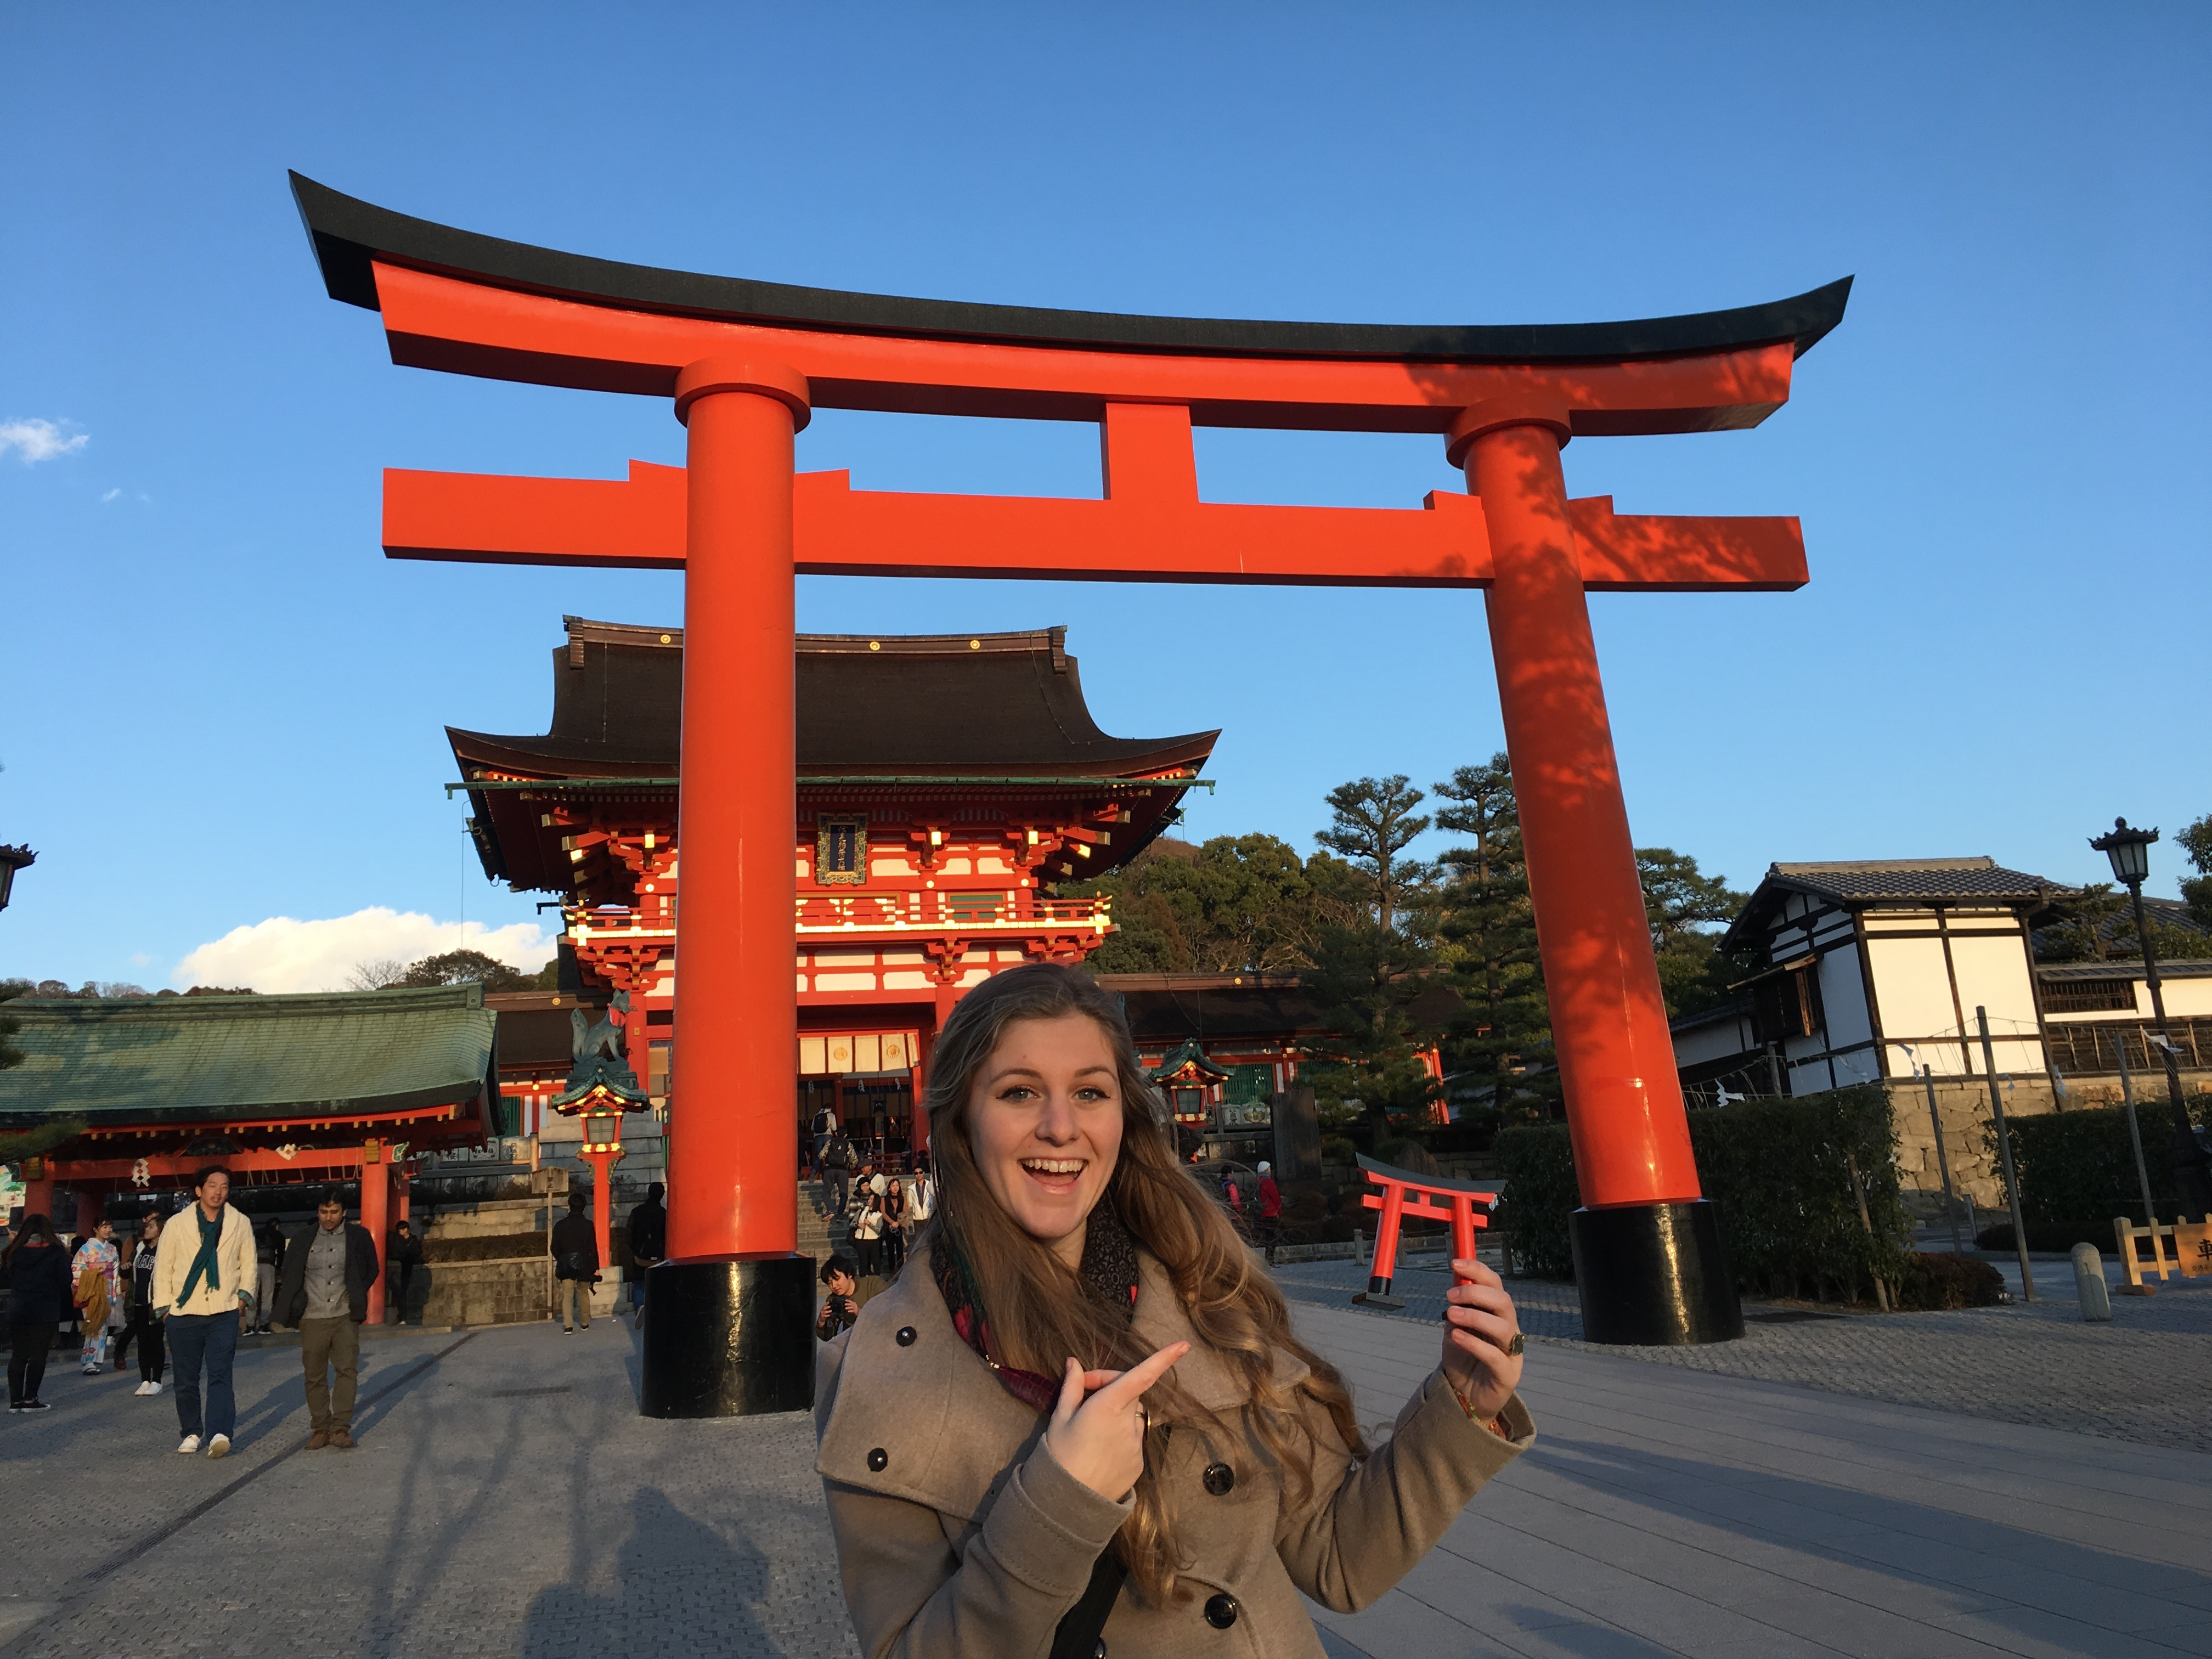 4 Colorful And Authentic Sights To Experience Japanese